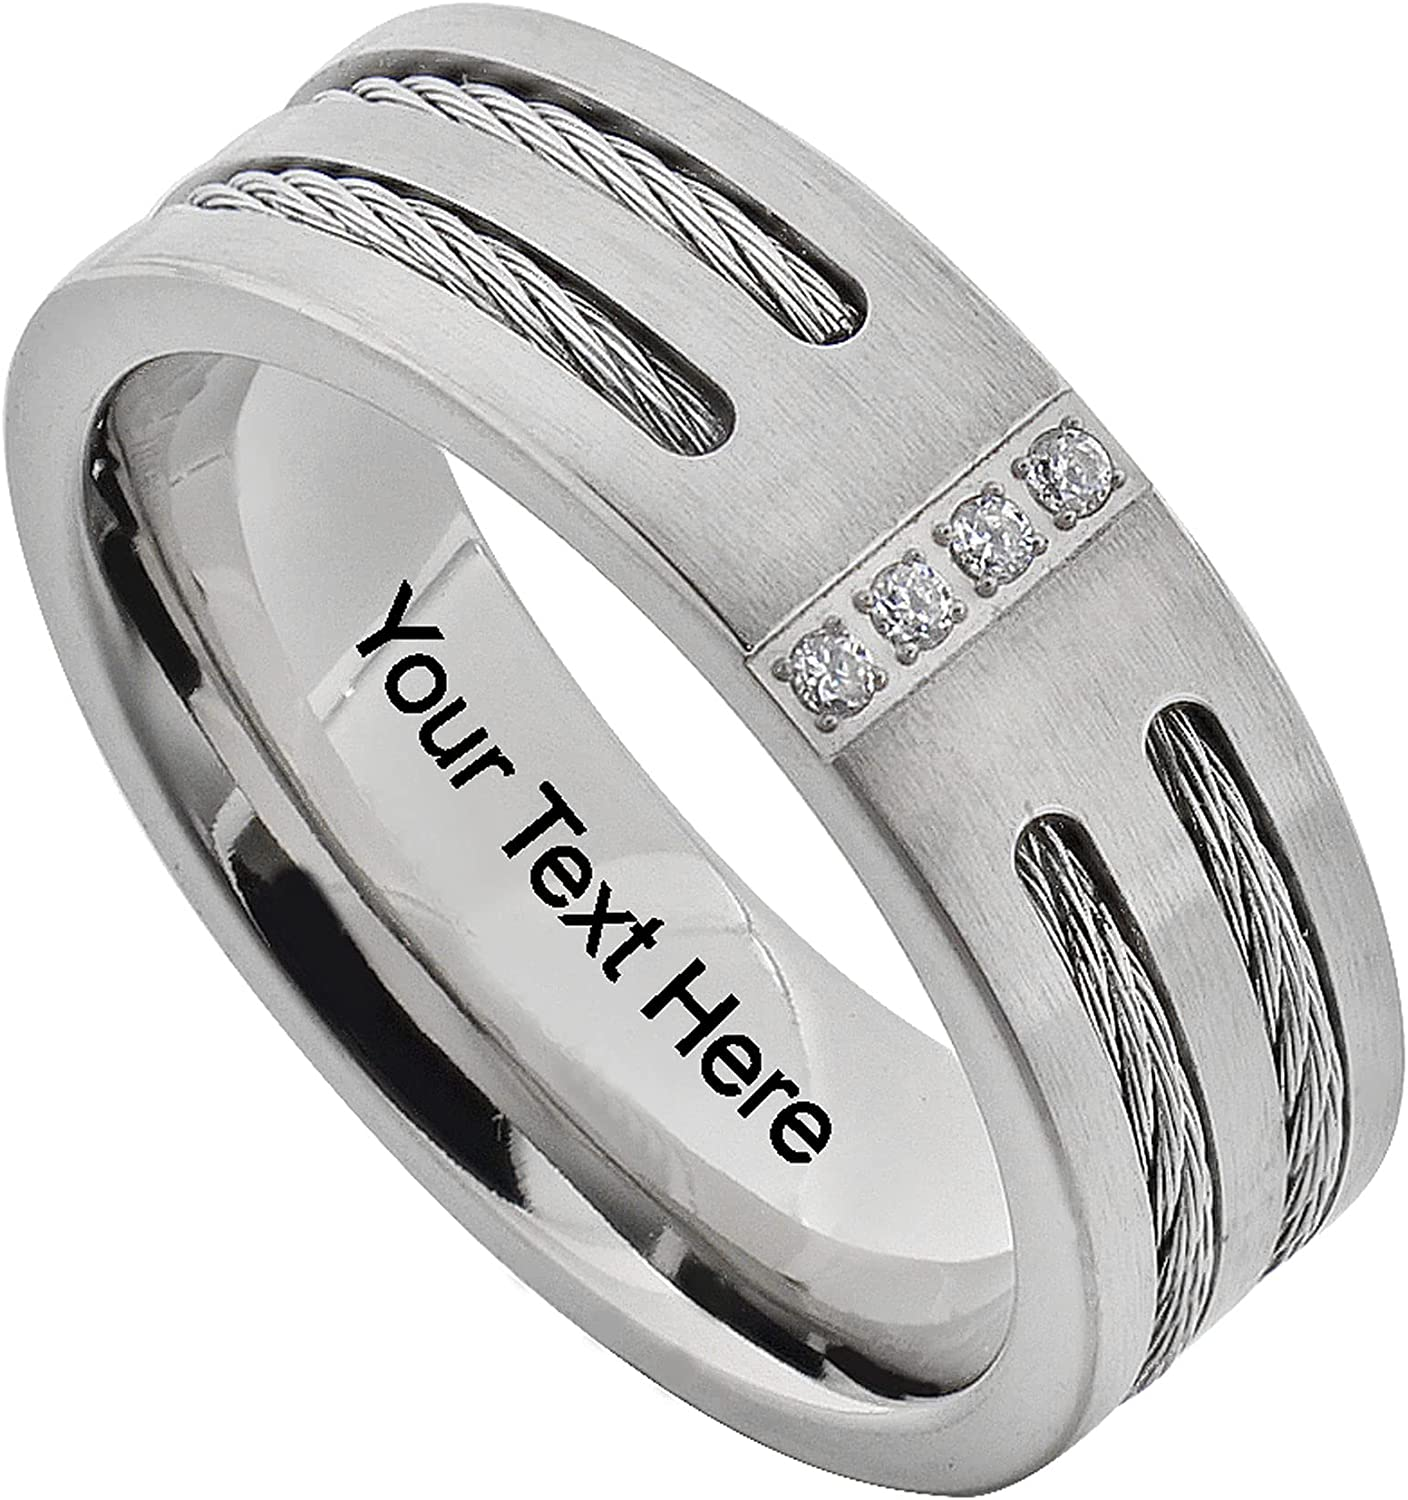 FlameReflection 8mm Men's Titanium Wedding Band Round Cubic Zirconia Stainless Steel Cable Ring Size 8-13 SPJ